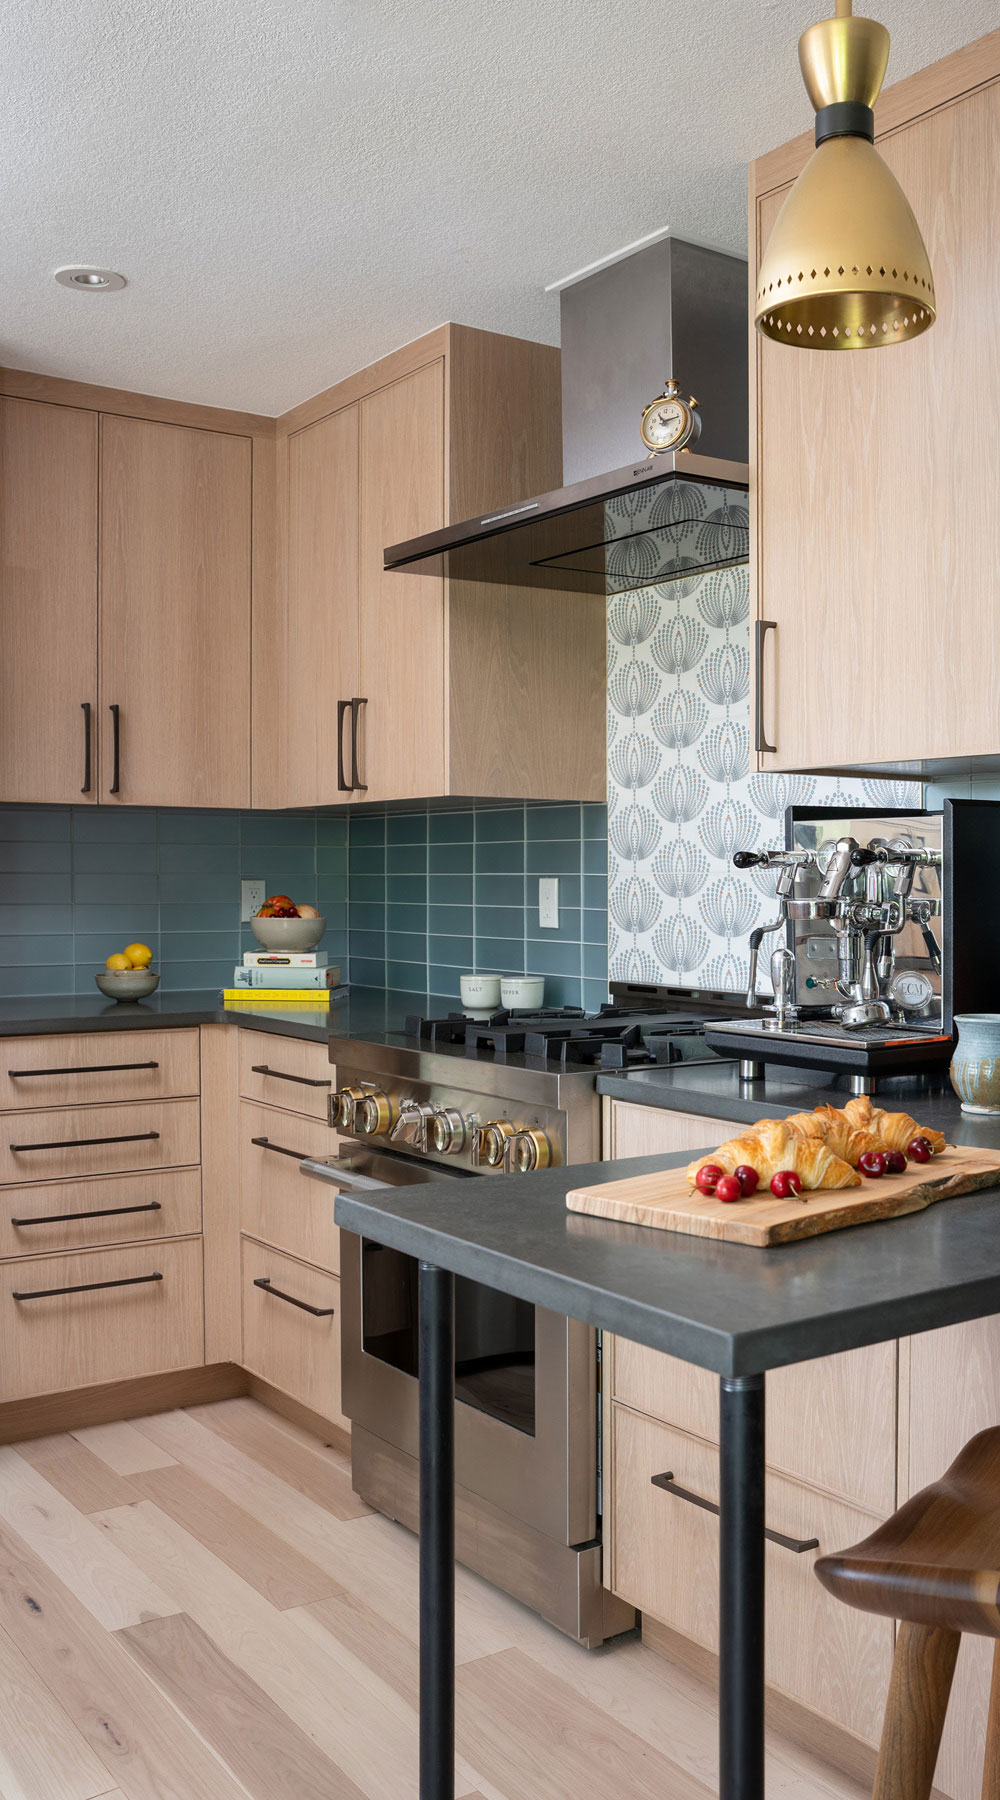 9+ Light Wood Kitchen Cabinets  NATURAL LOOK  Cabinets